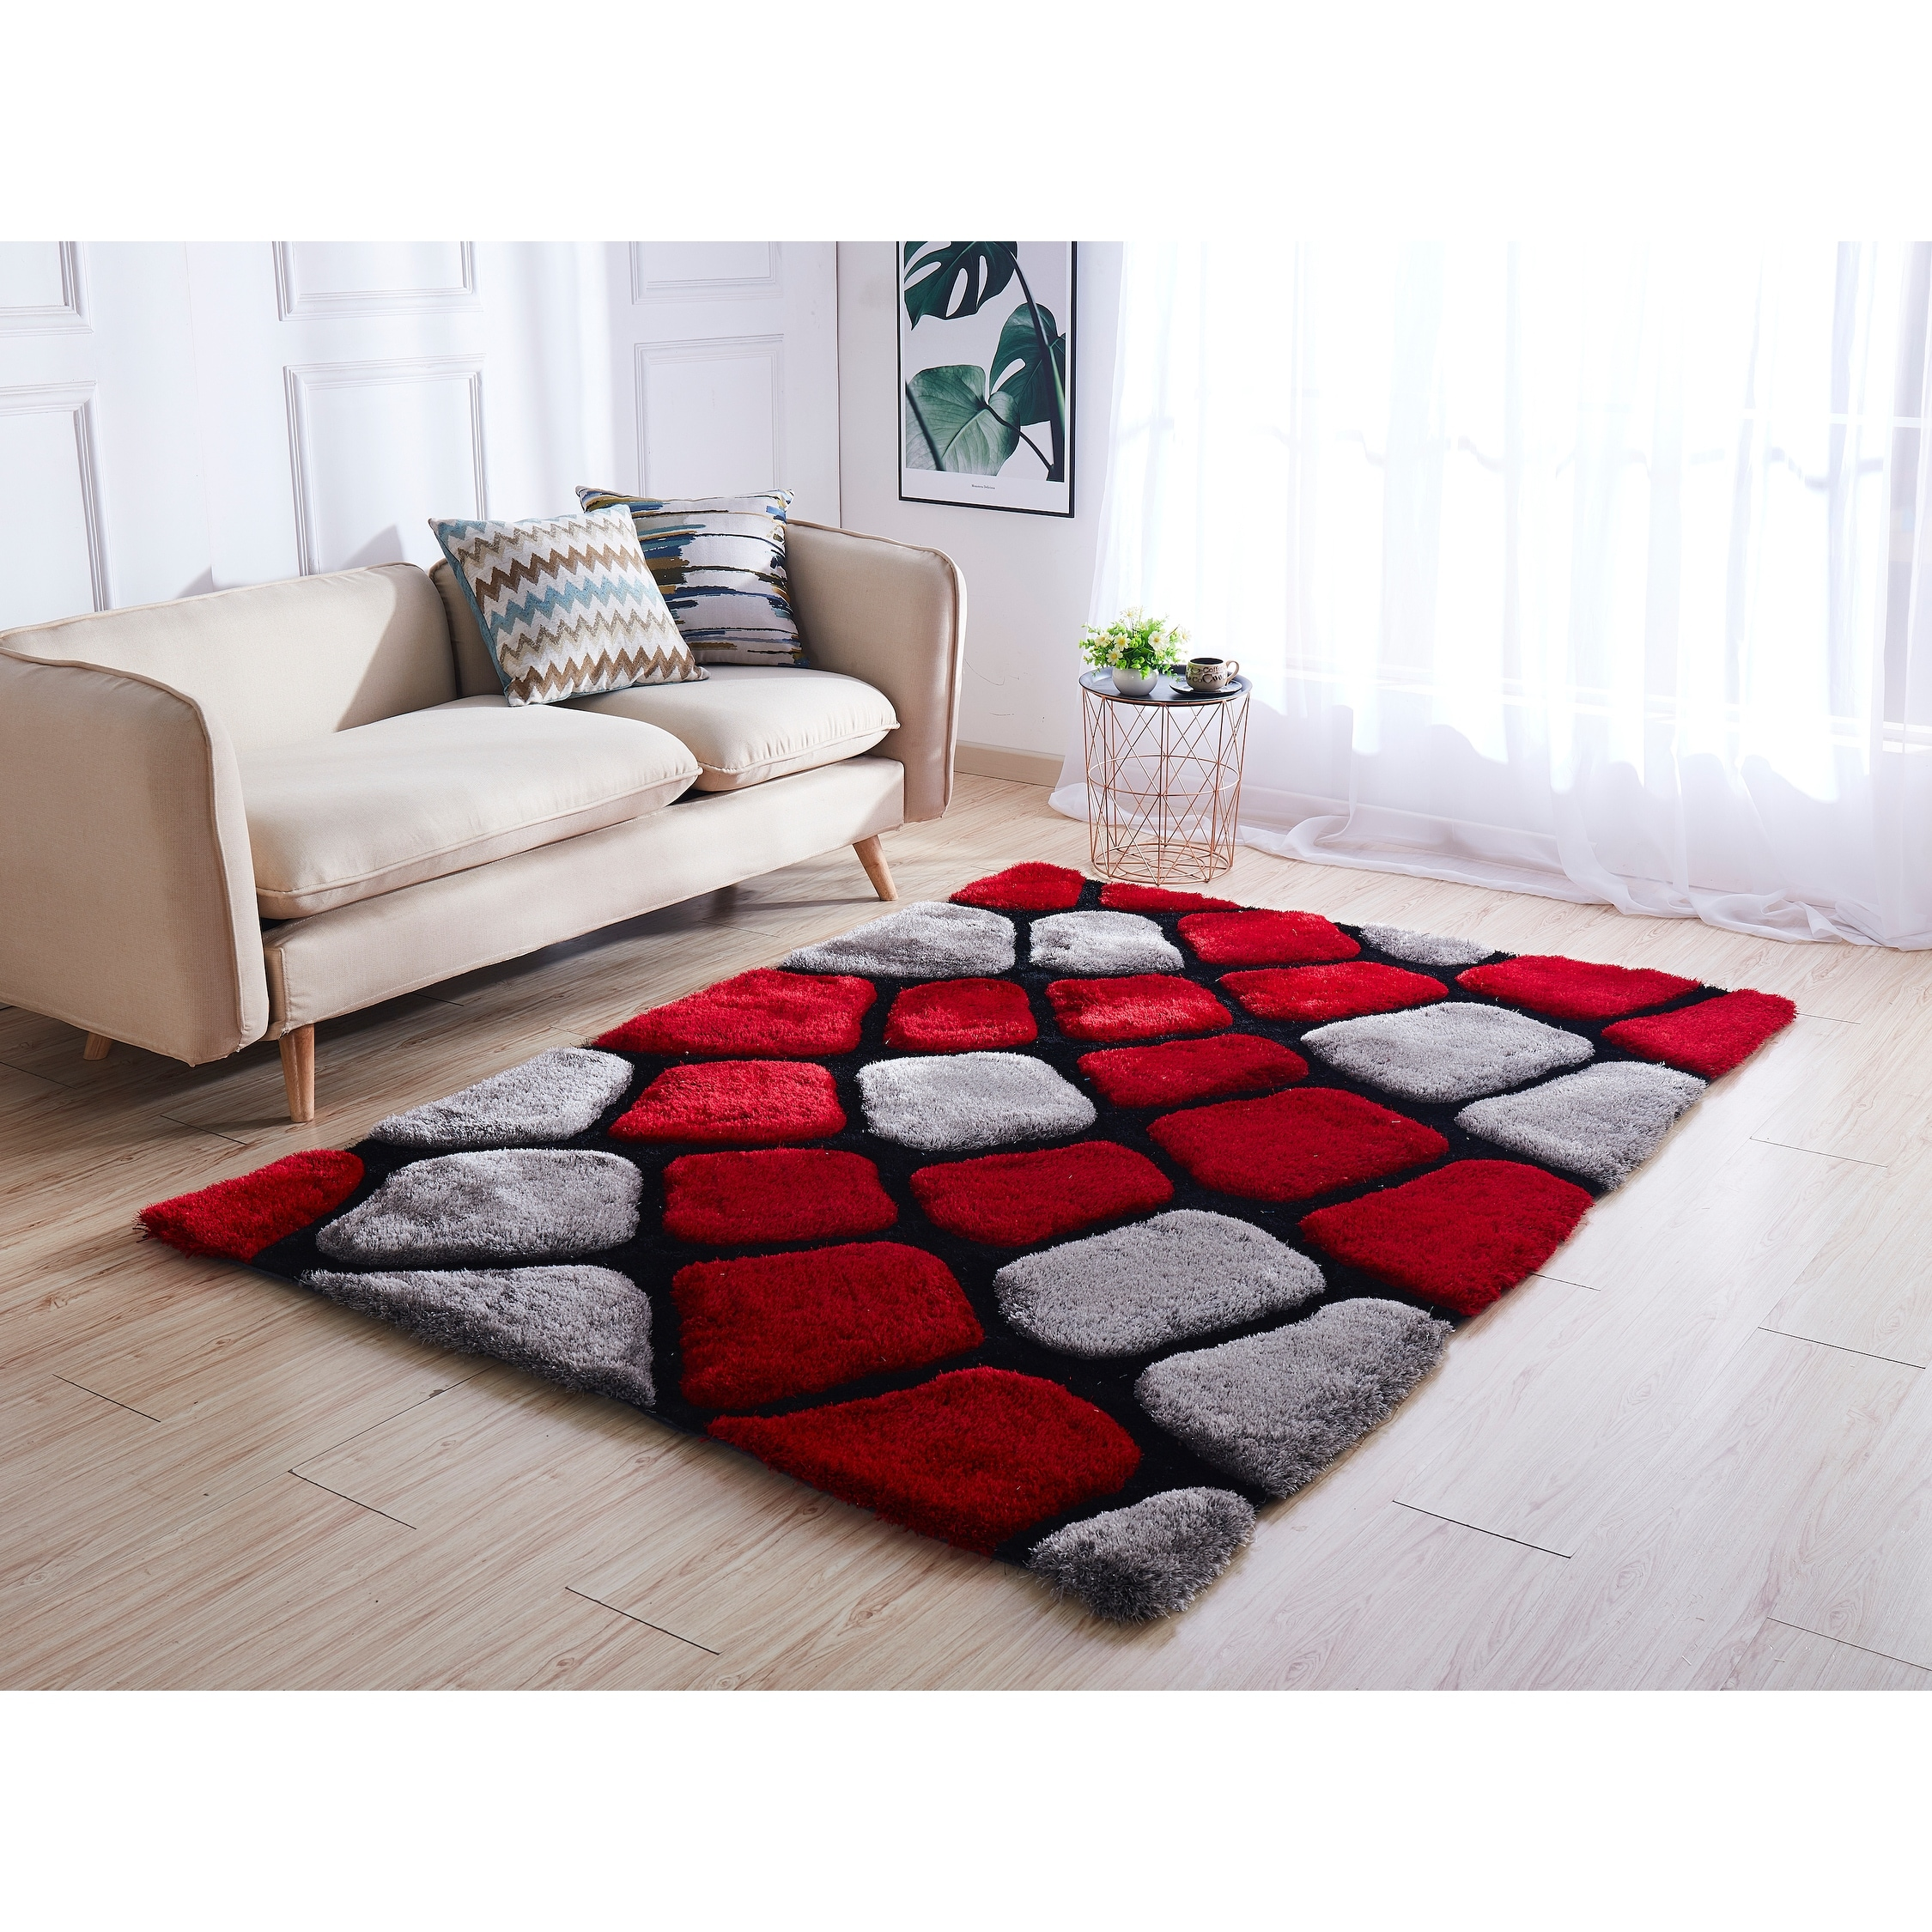 Shop For Mateos Shag Collection Stone Area Rug Get Free Delivery On Everything At Overstock Your Online Home Decor Store Get 5 In Rewards With Club O 30342562